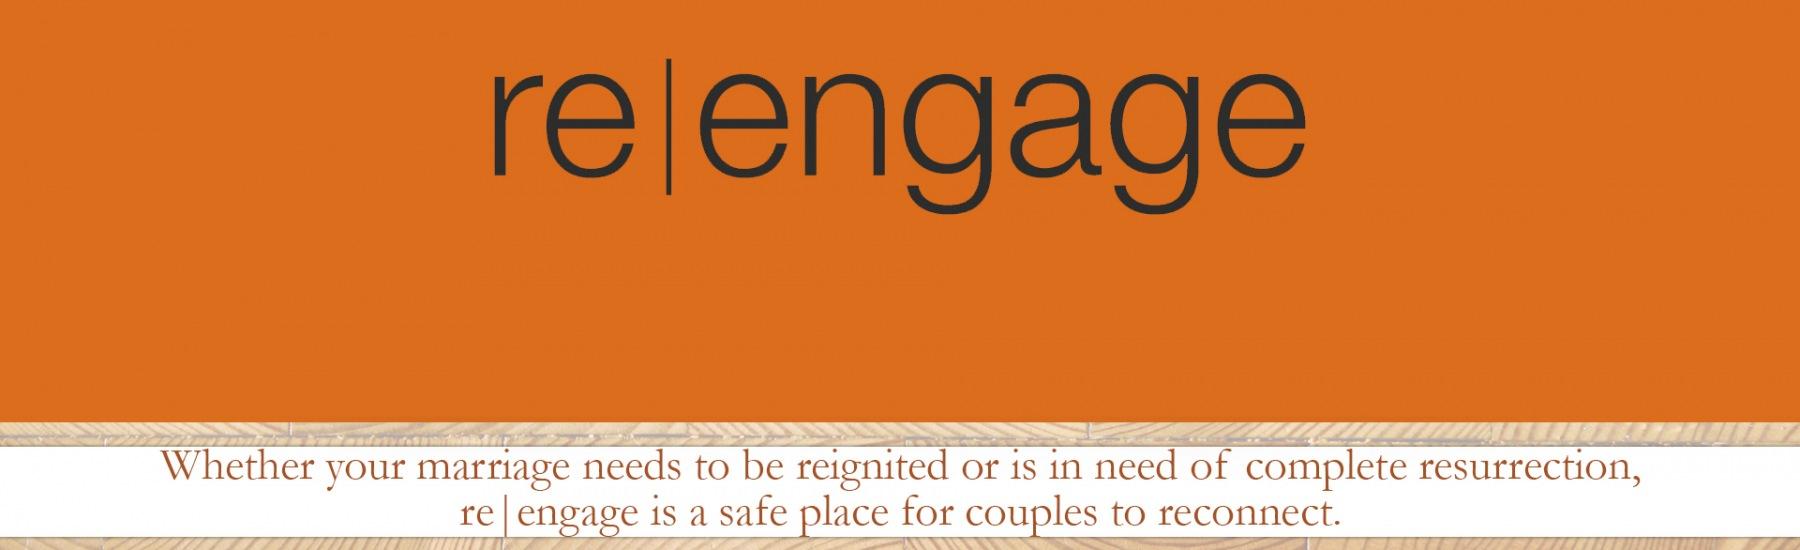 Re engage Ministry